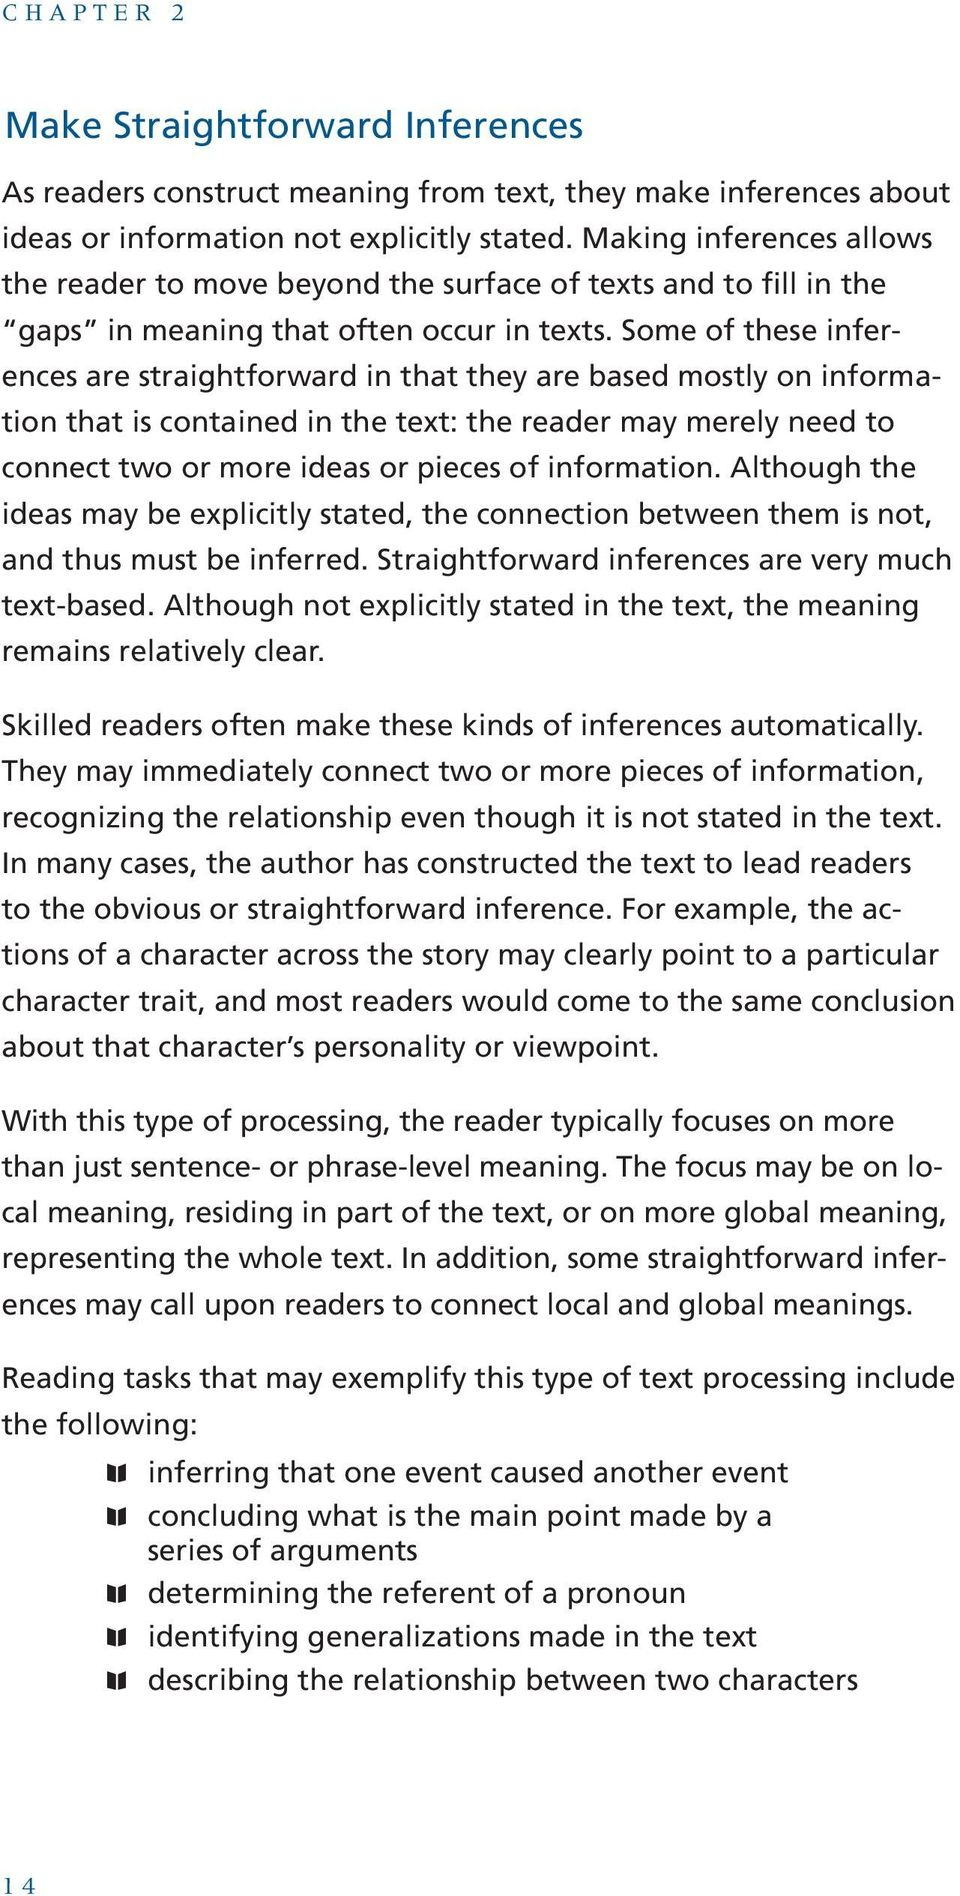 Some of these inferences are straightforward in that they are based mostly on information that is contained in the text: the reader may merely need to connect two or more ideas or pieces of